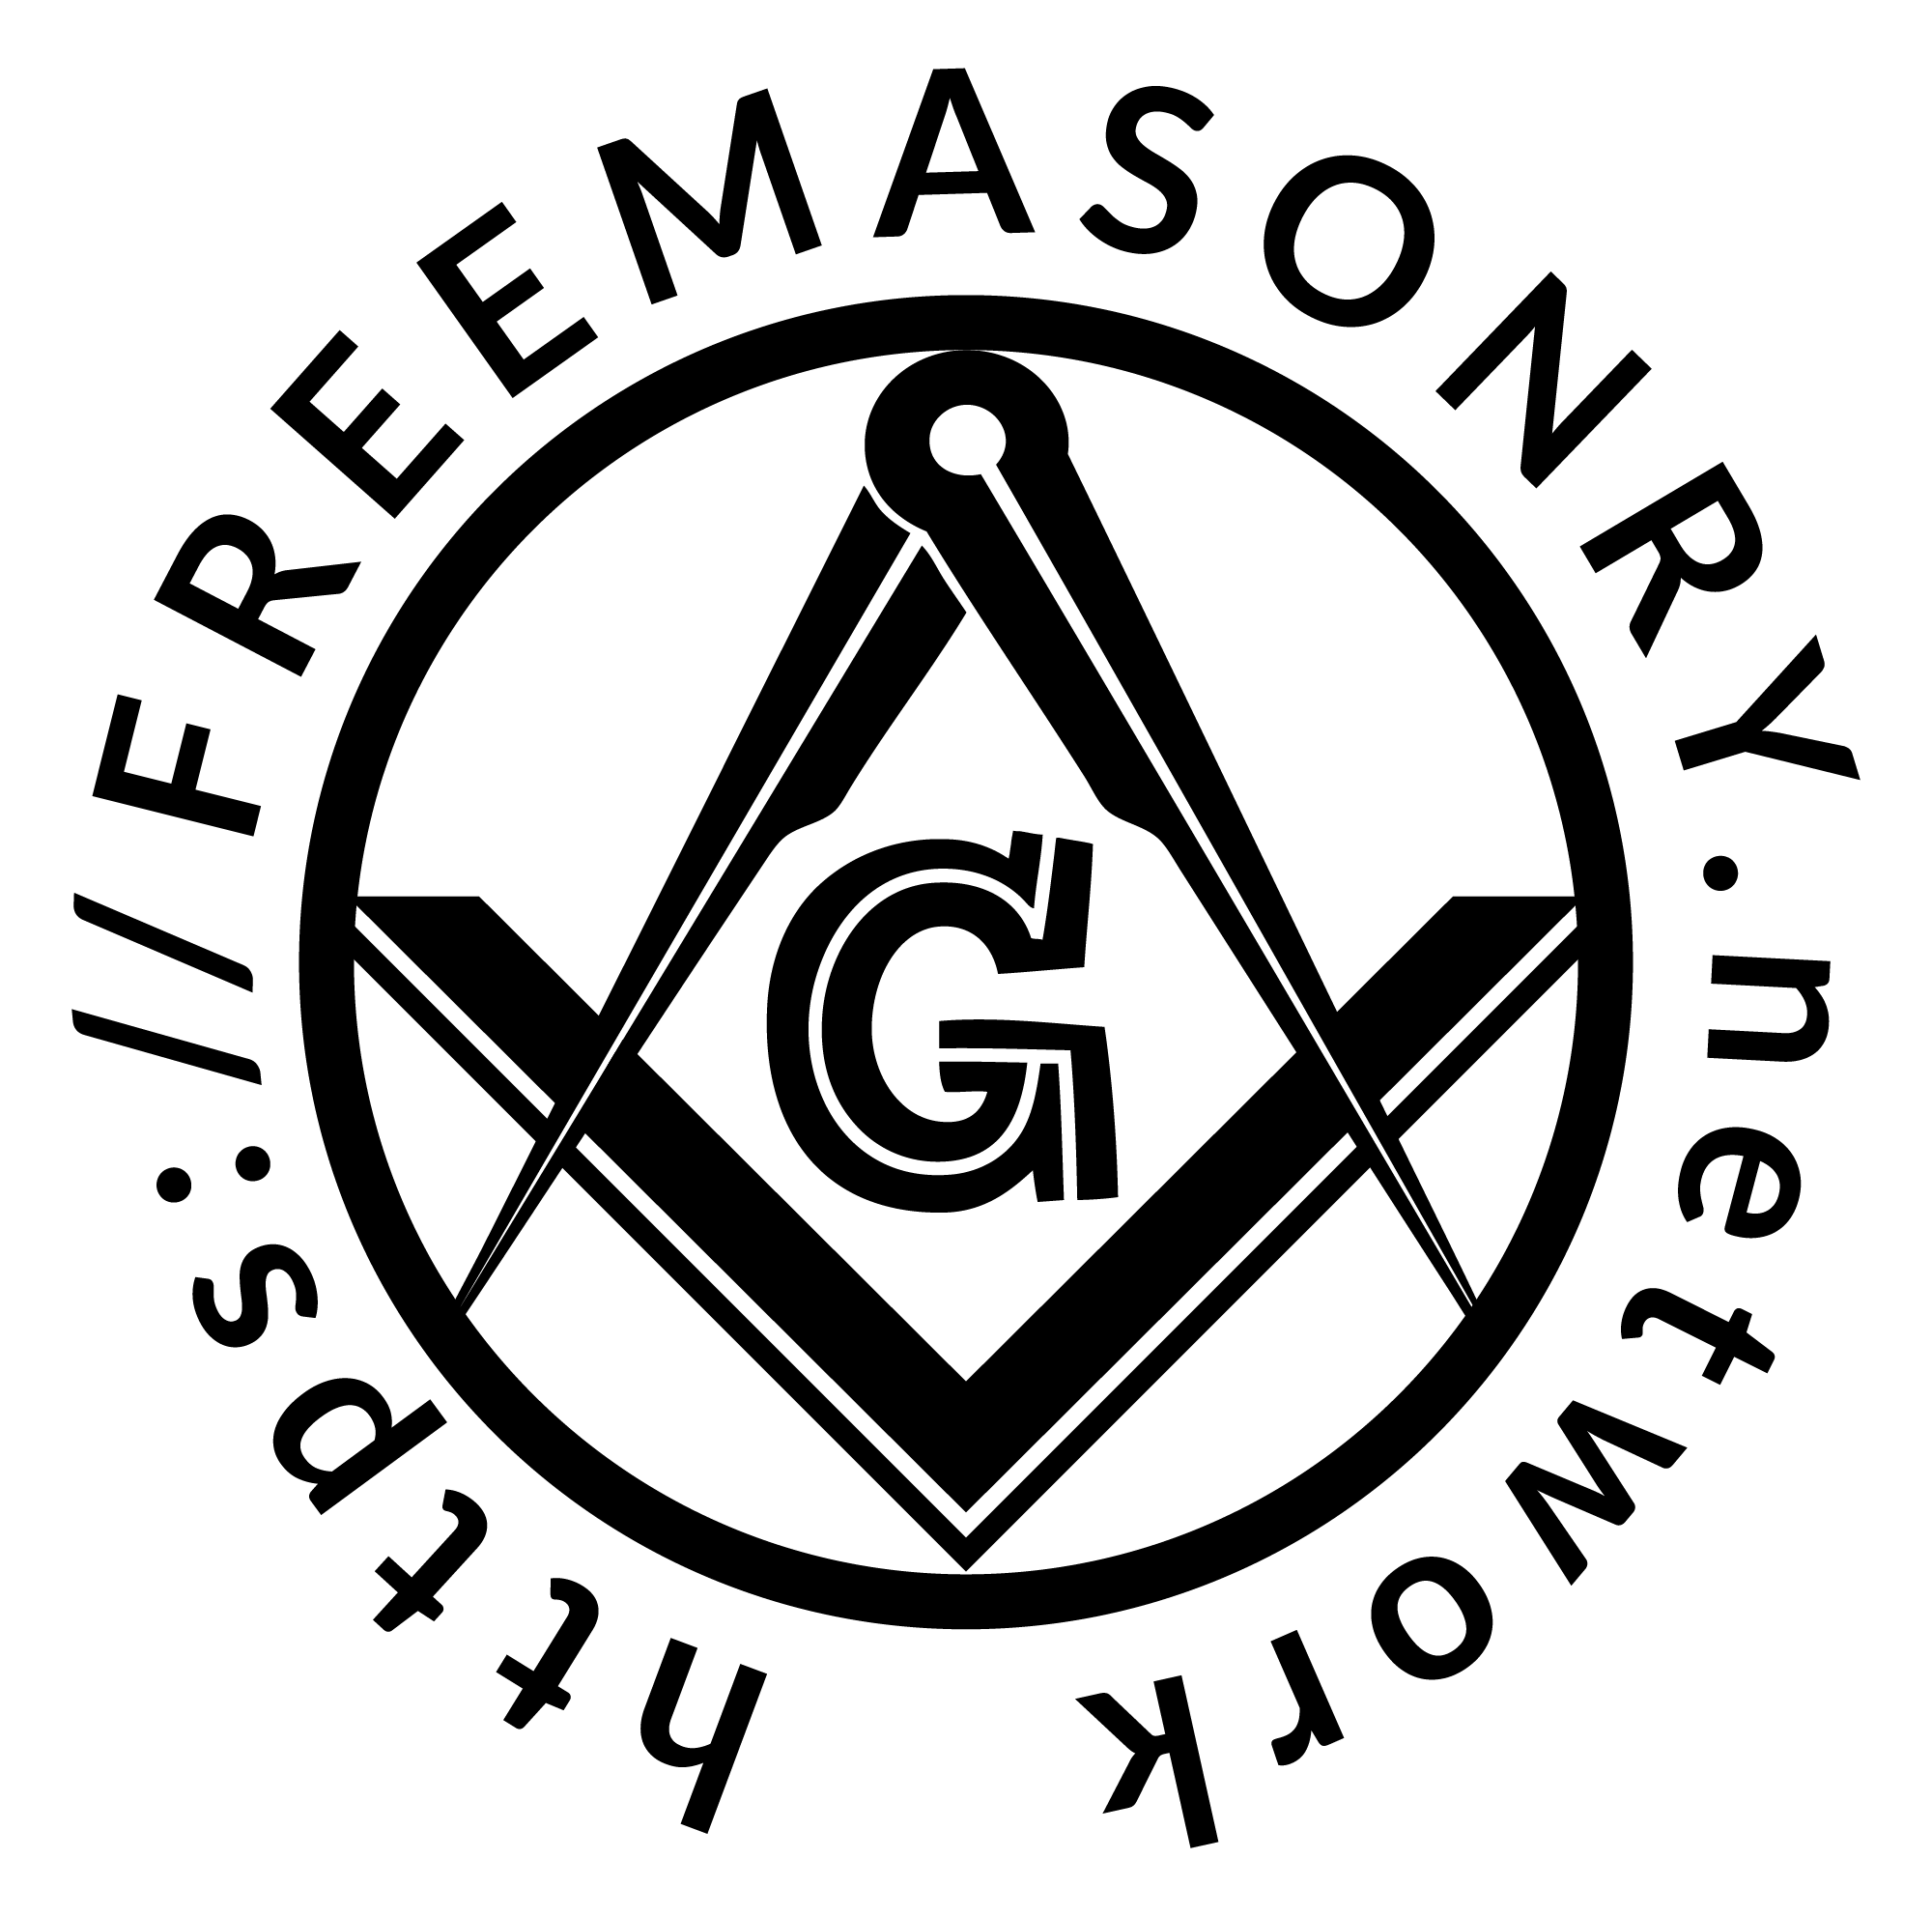 MASONIC BLACKBALL - Mackey's Encyclopedia of Freemasonry